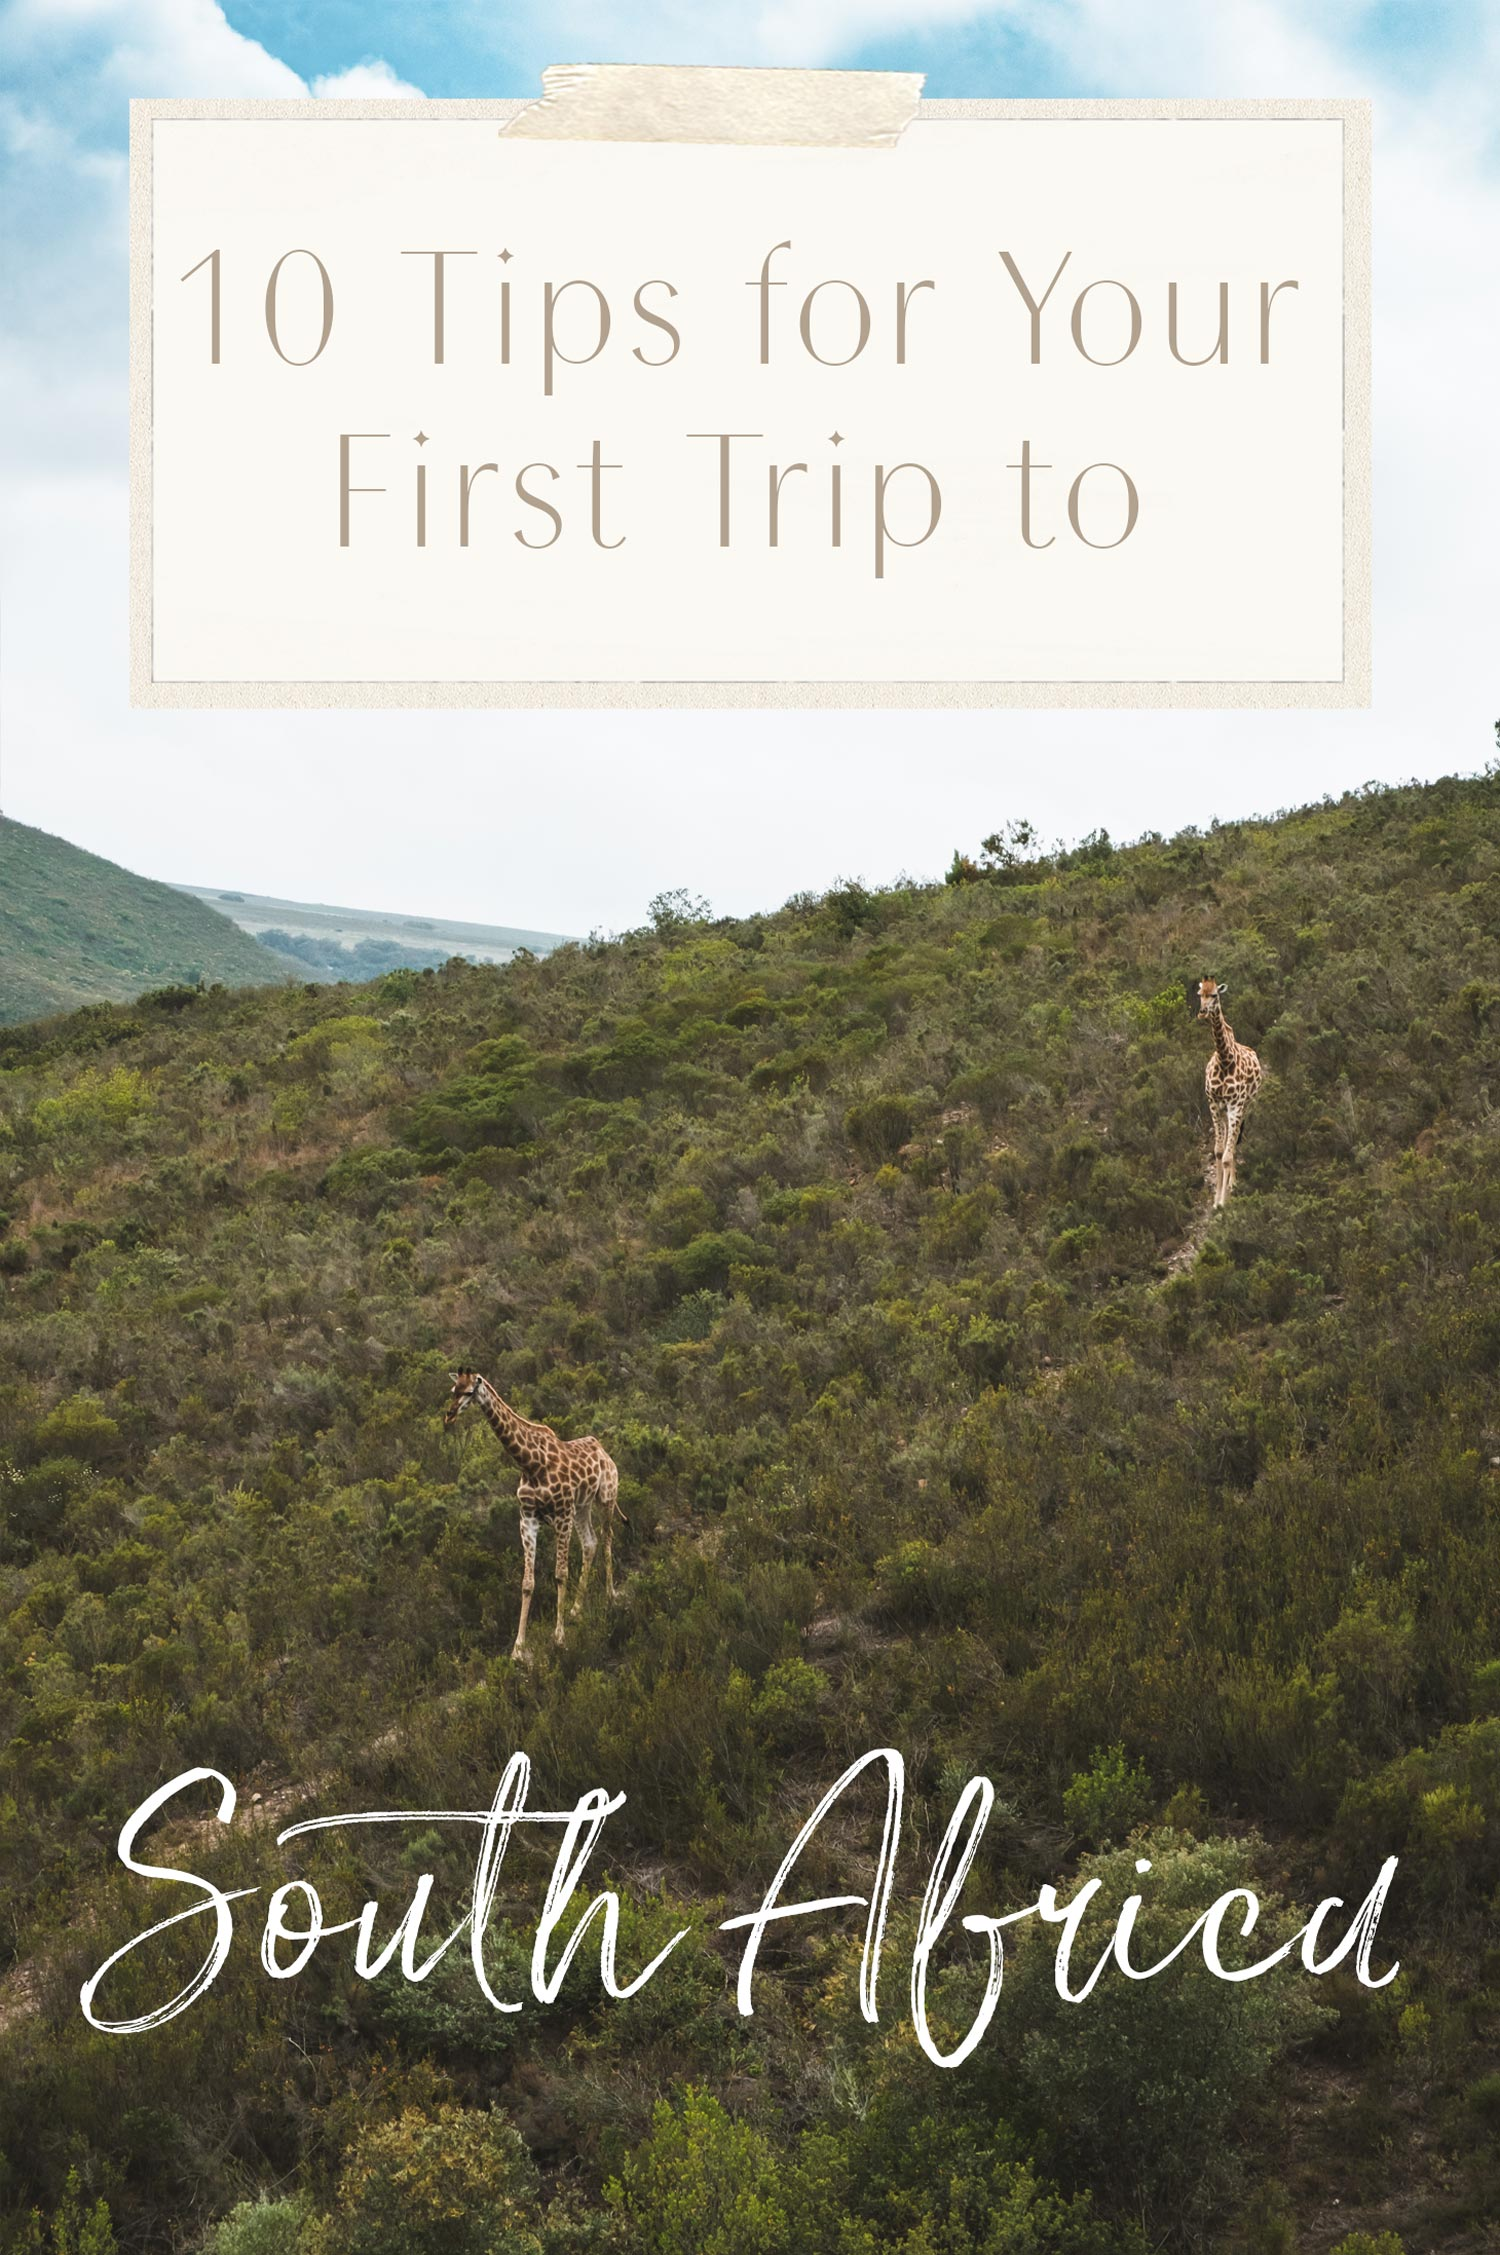 10 tips for your first trip to South Africa